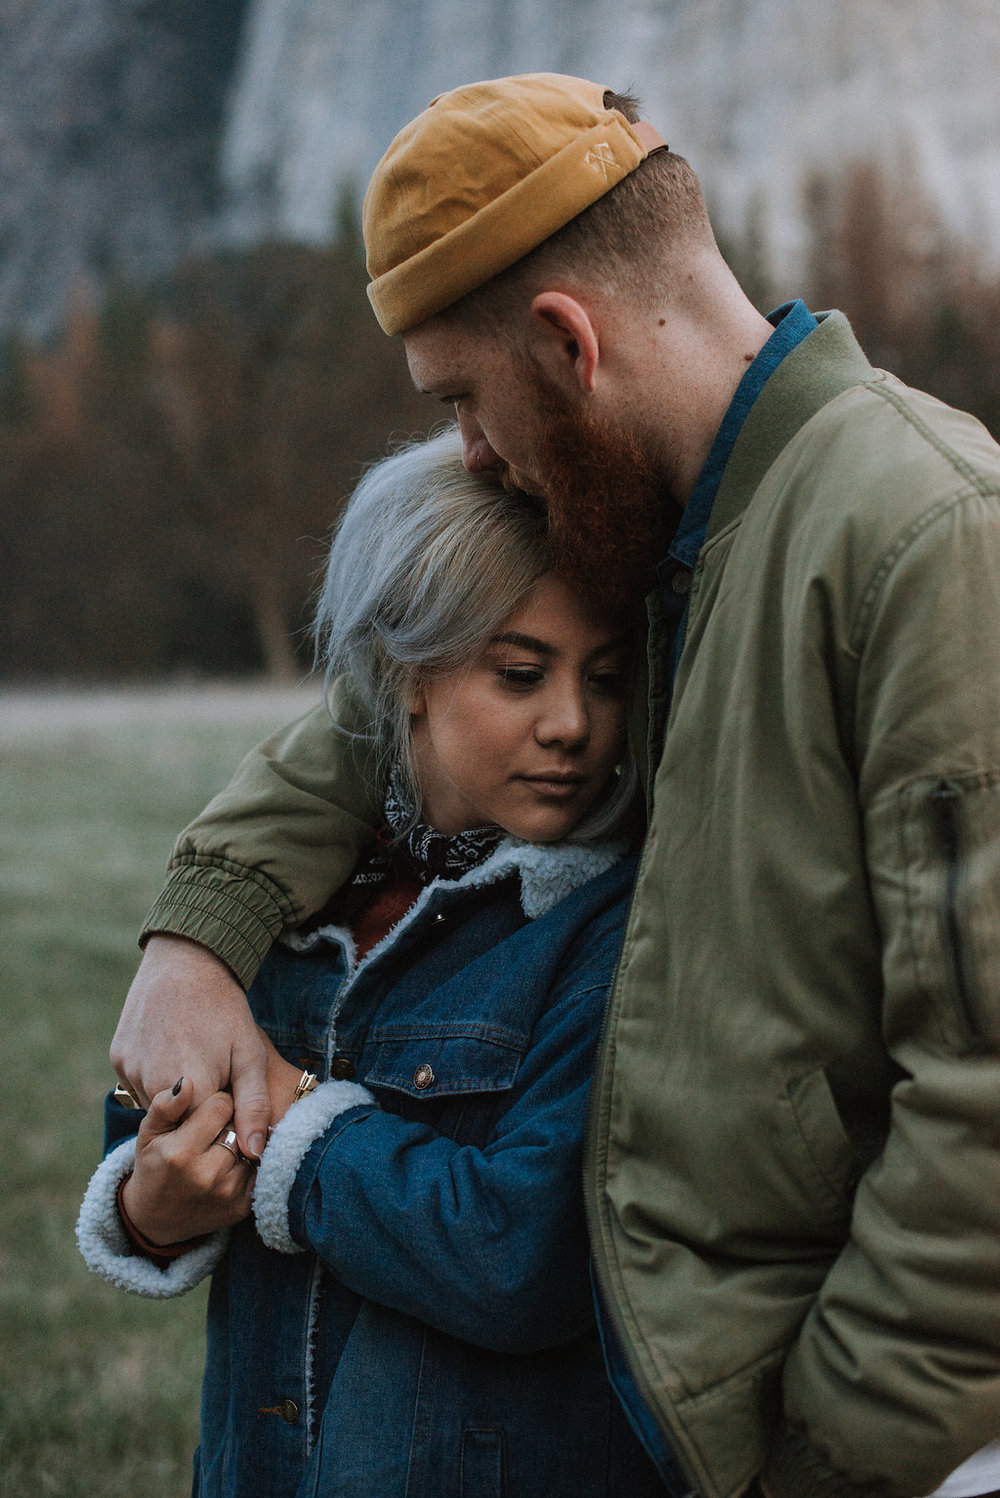 Man holds woman in jacket in Yosemite National Park.